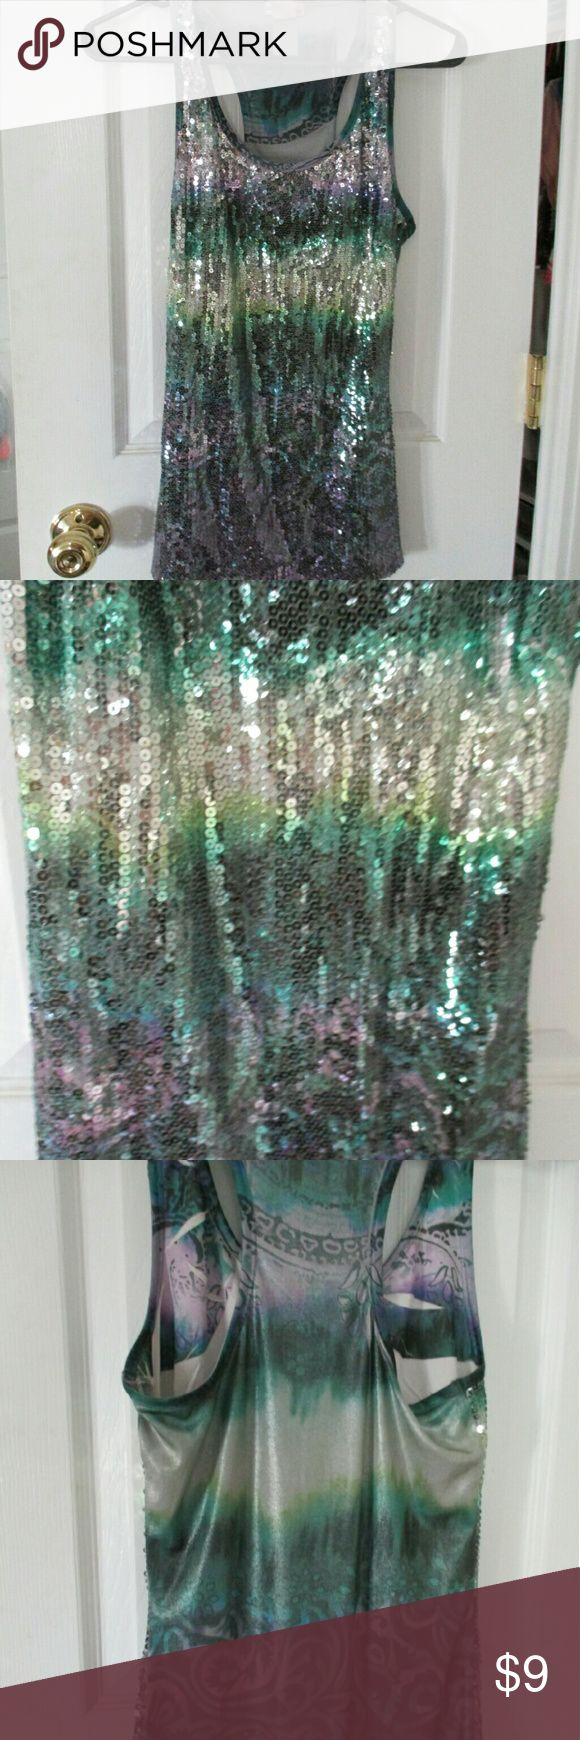 LABOR DAY WEEKED SALE Body central tank Shimmer tank.  From body central size M Tops Tank Tops